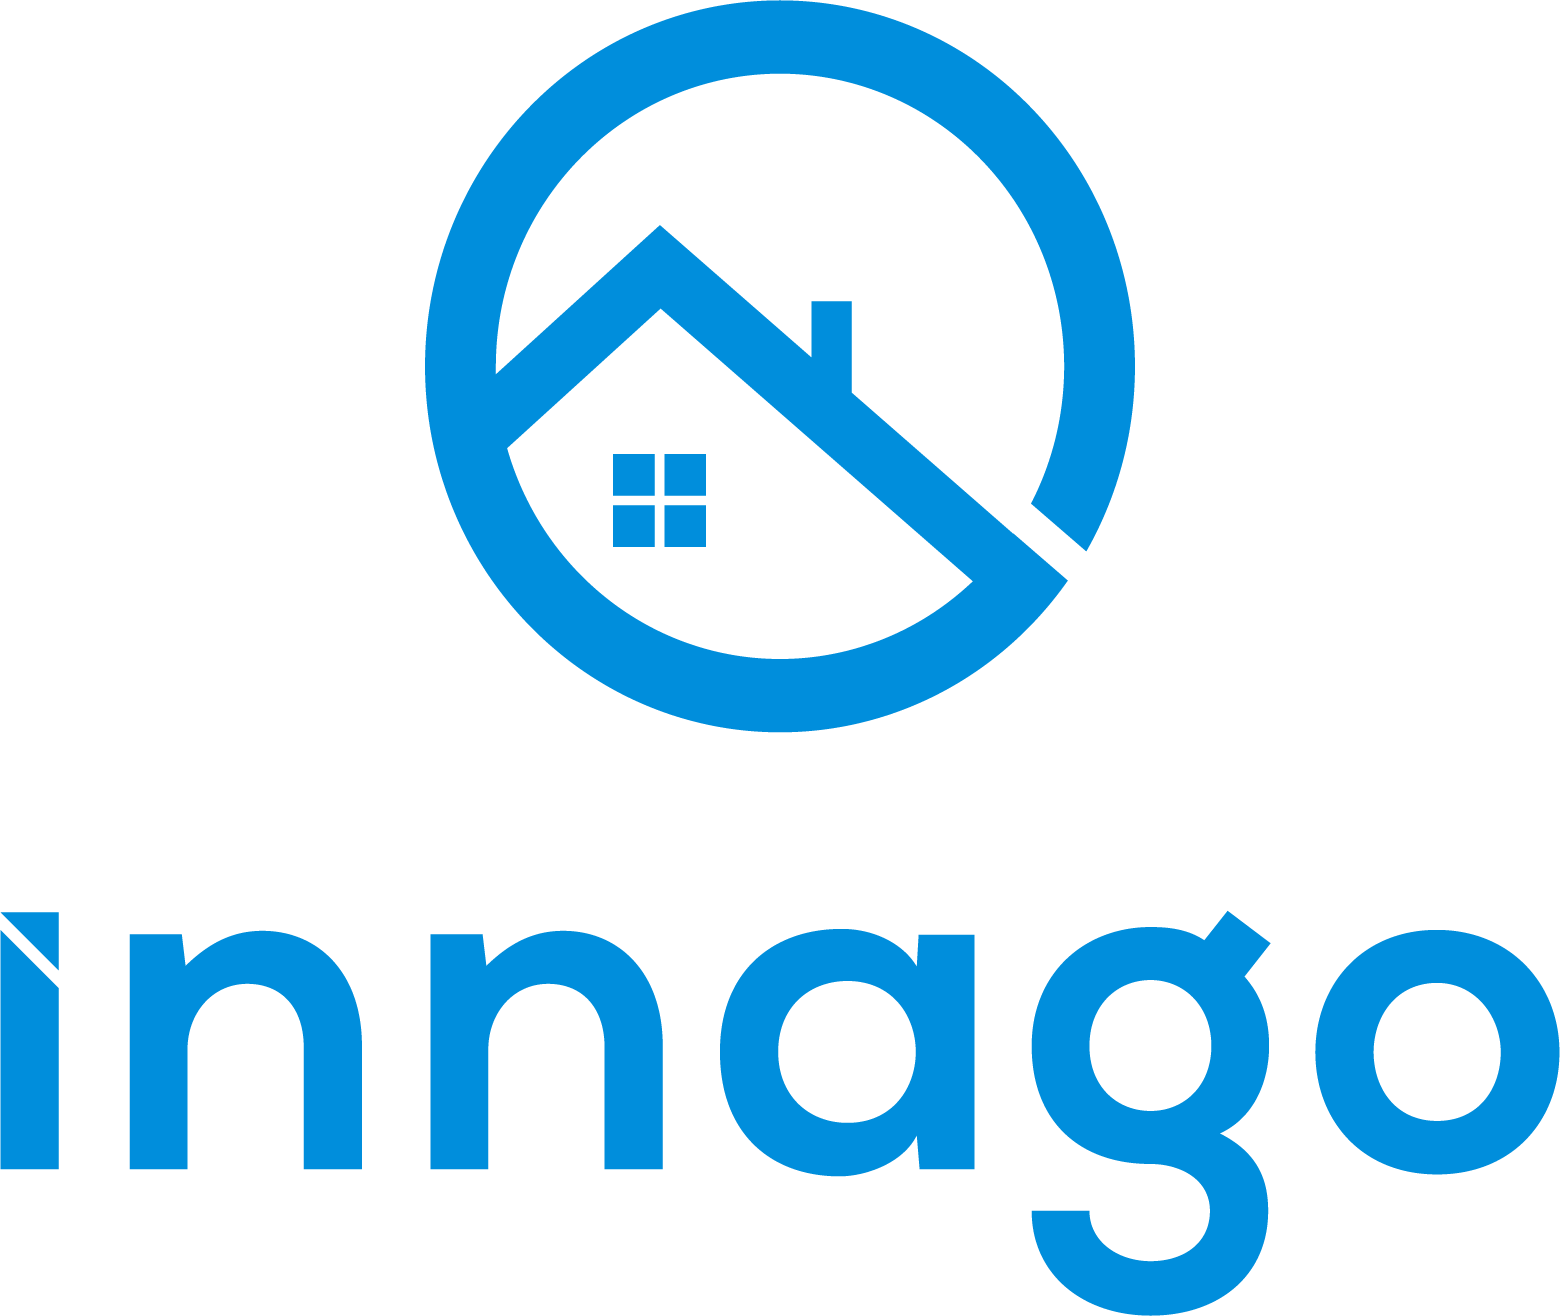 The American Apartment Owners Association Names Innago It Exclusive, Recommended Property Management Software.